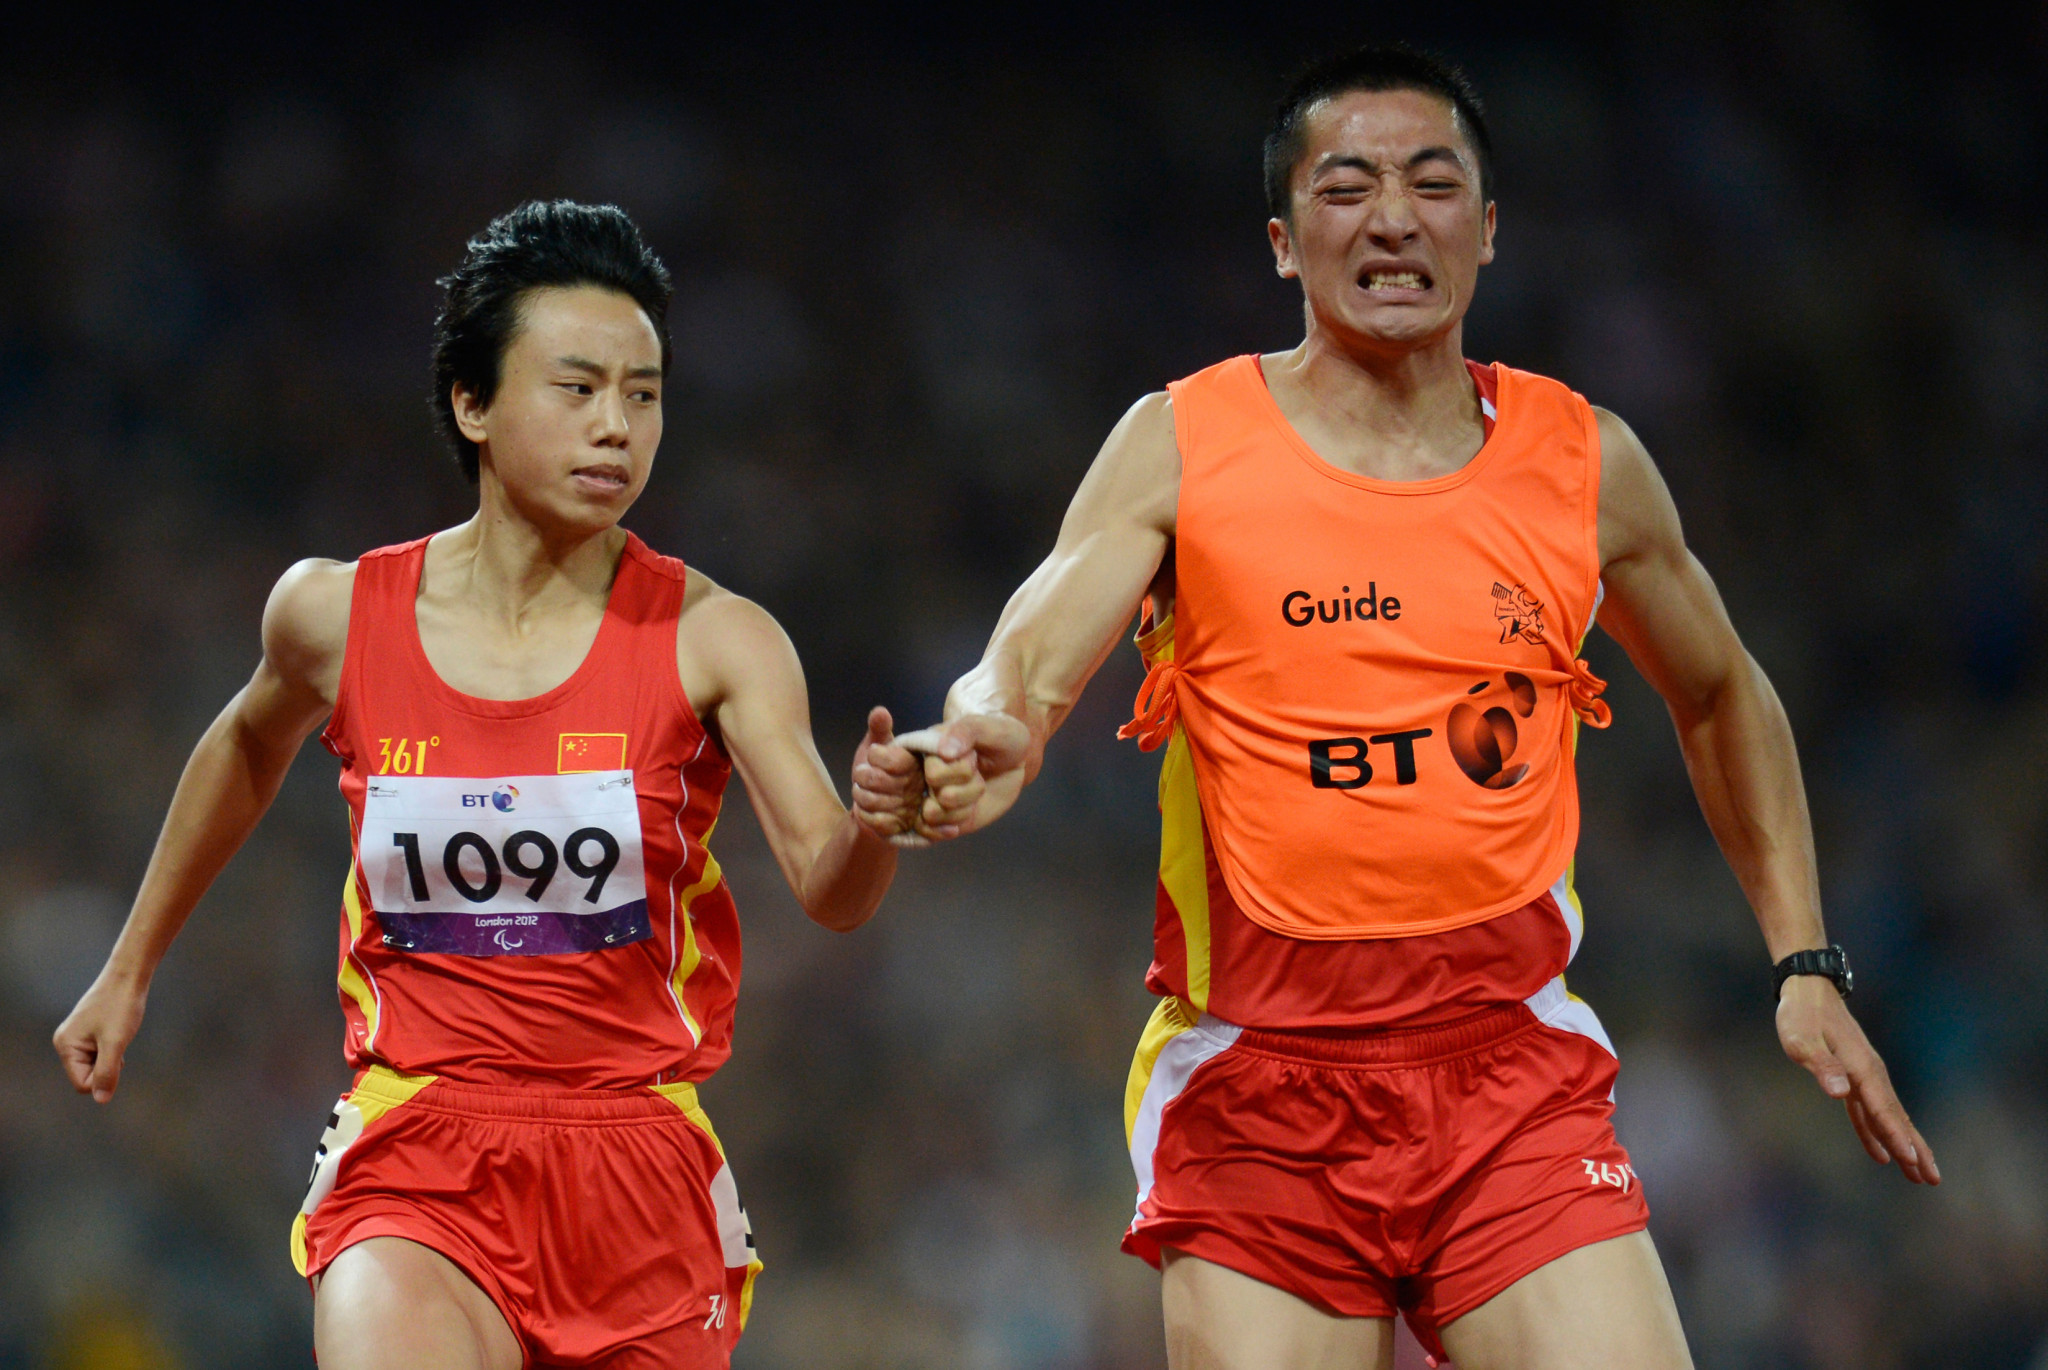 China's double Paralympic gold medallist Zhou Guohua won the women's 100m T11 final ©Getty Images